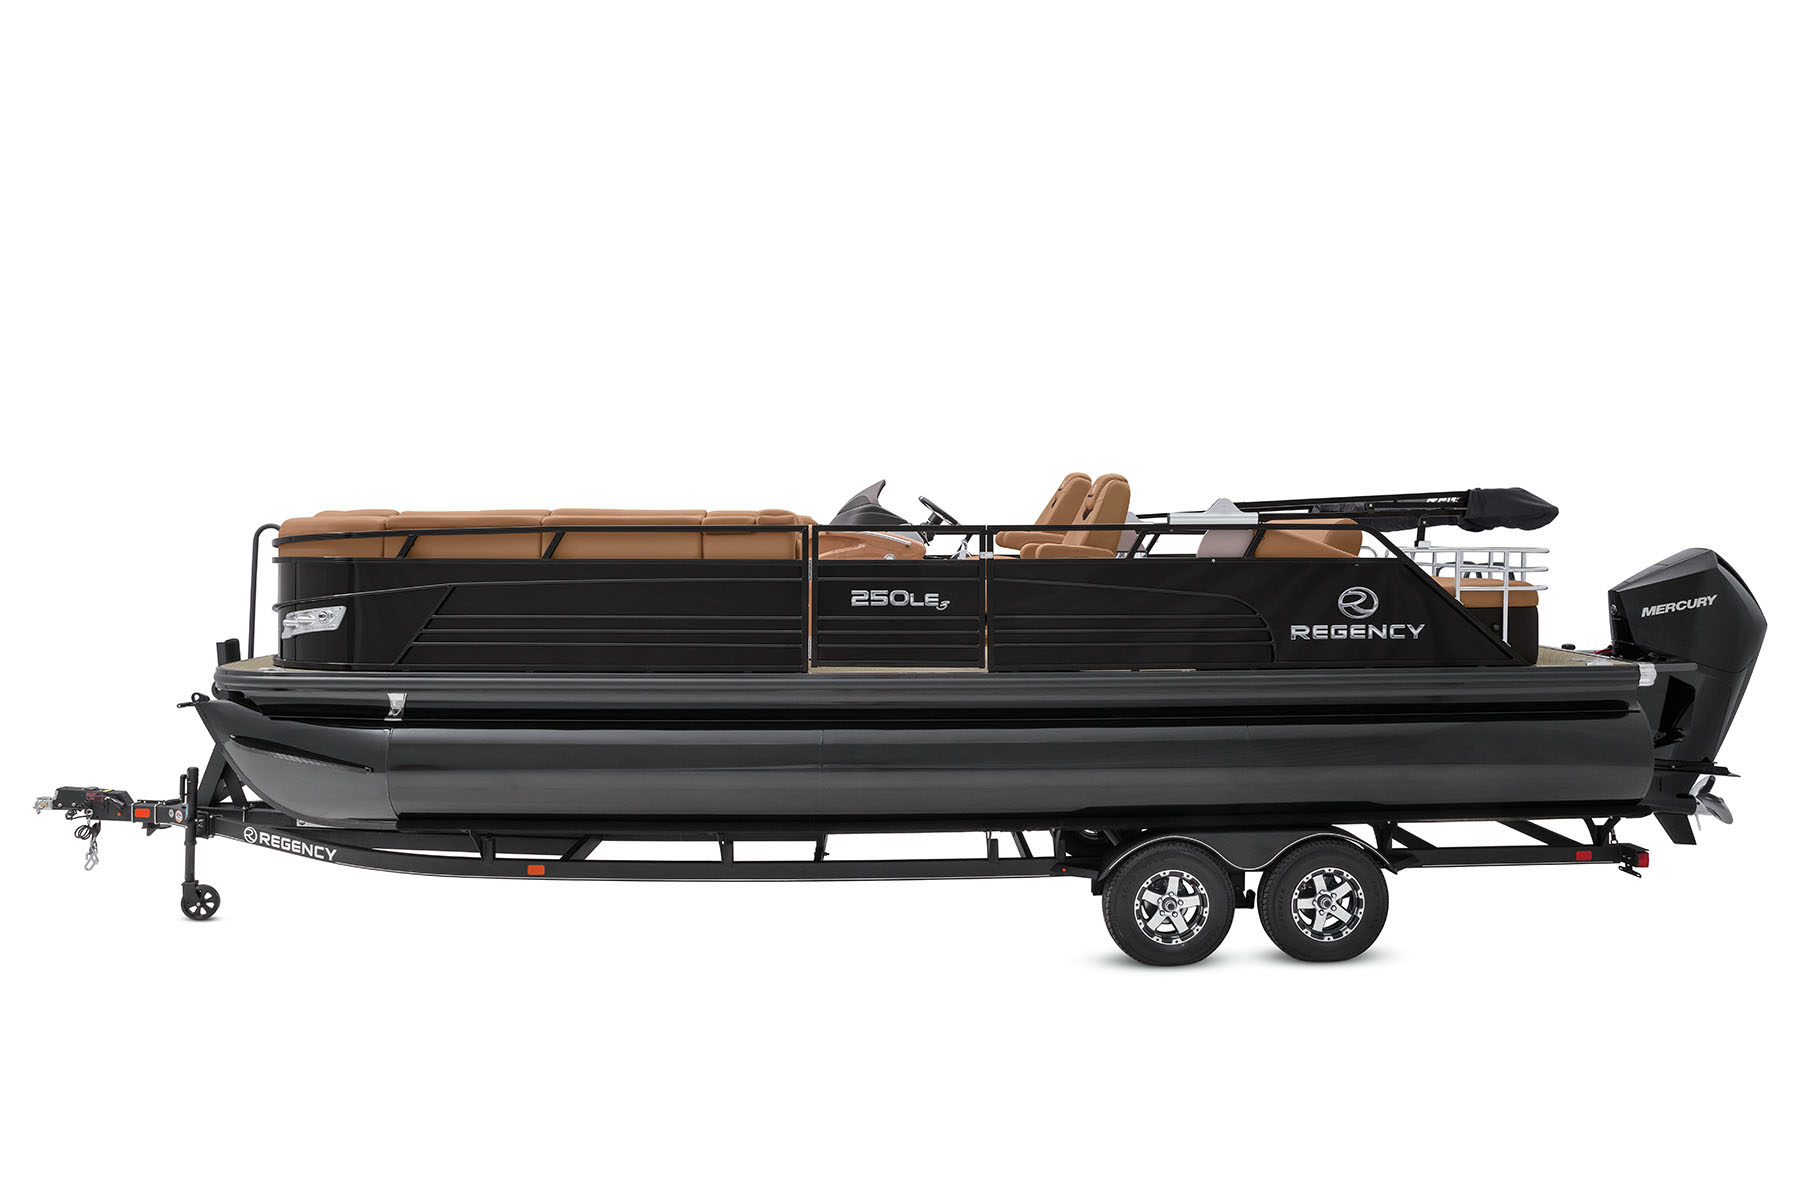 Profile view of 250 LE3 Sport Pontoon